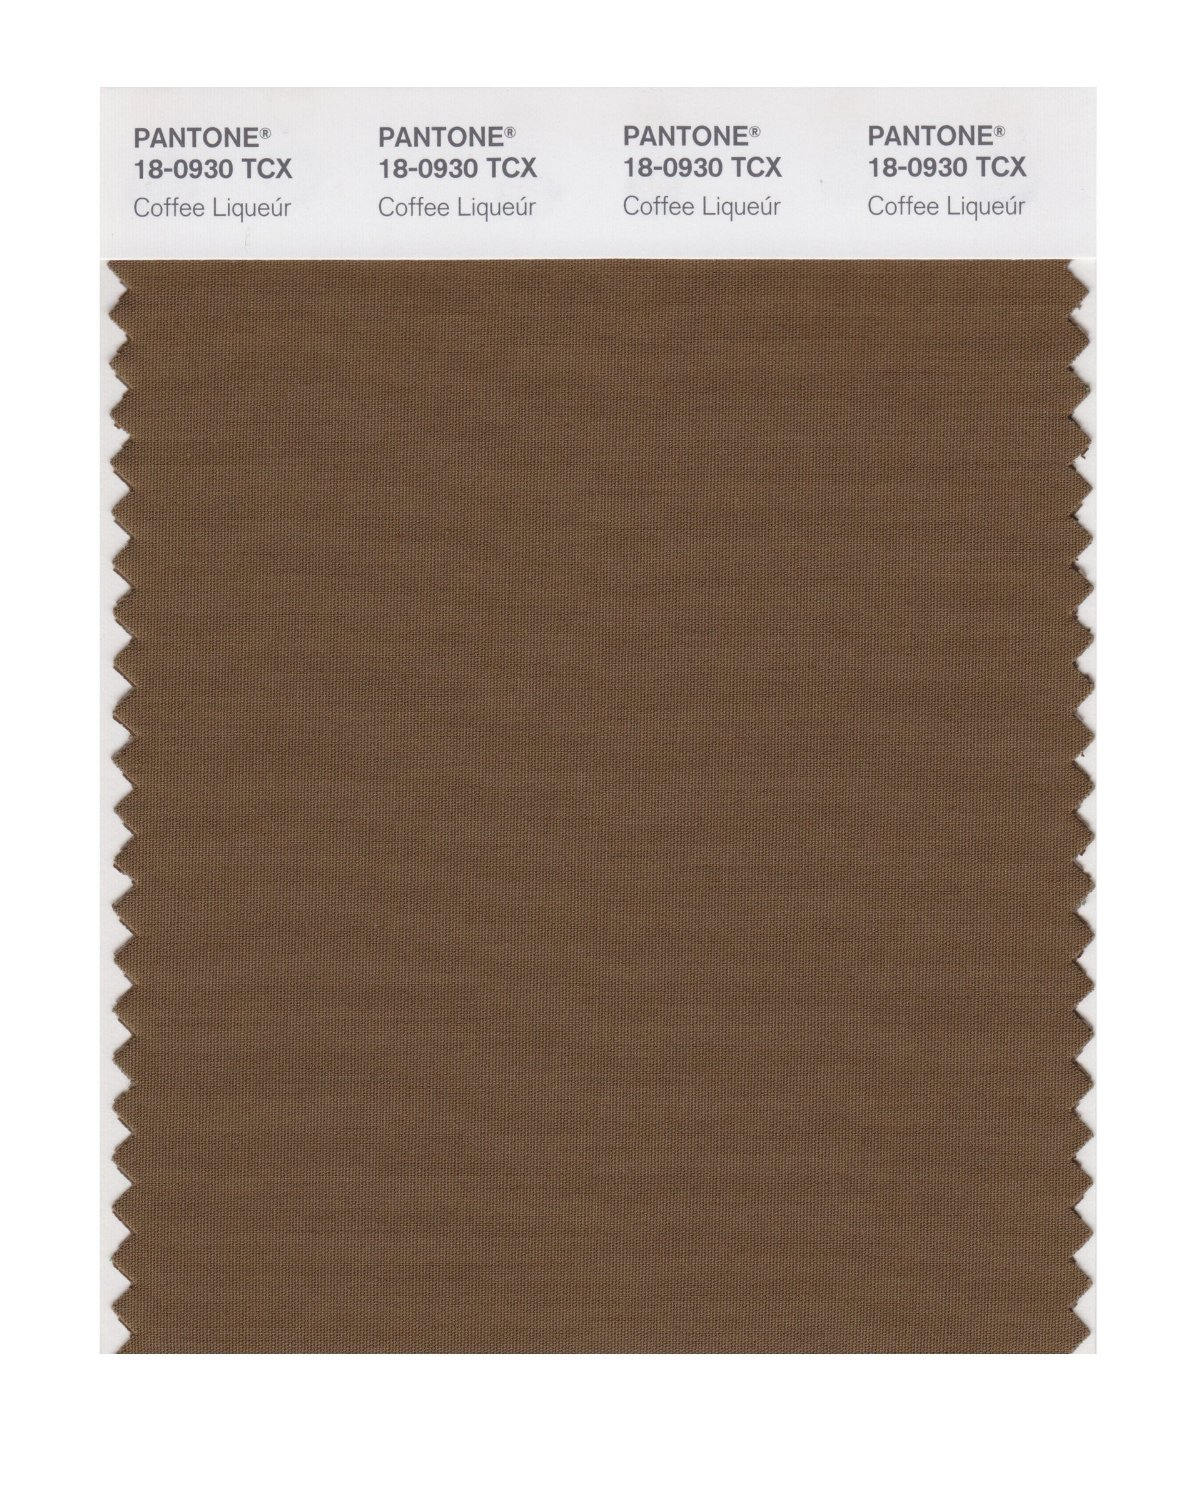 Pantone Smart Swatch 18-0930 Coffee Liqueur